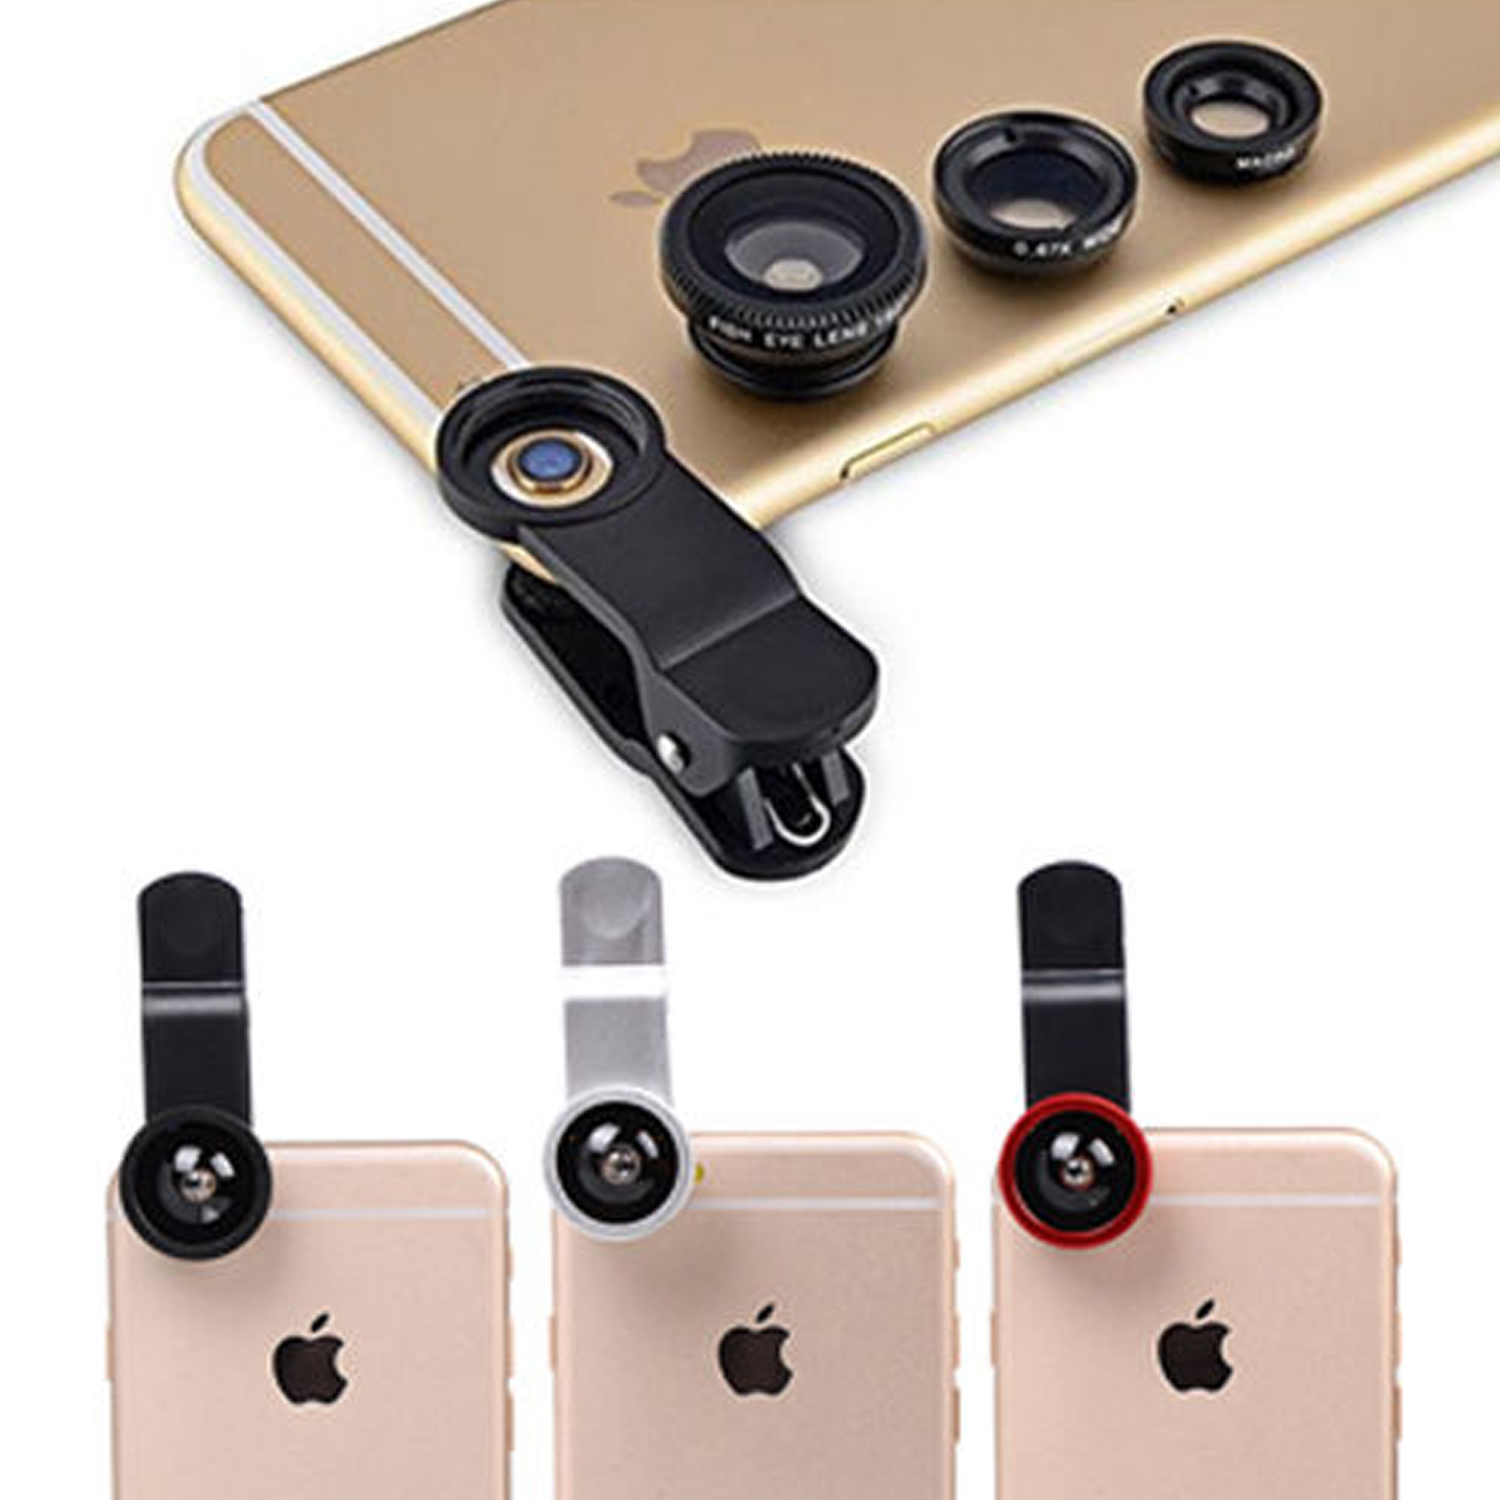 Universal 3 in 1 Camera Lens Kit Clip-On 180 Degree Supreme Fisheye + 0.67X Wide Angle+ 10X Macro Lens for iPhone 8 7 6s 6 Plus Smartphones Samsung HTC Android (Black),iClover